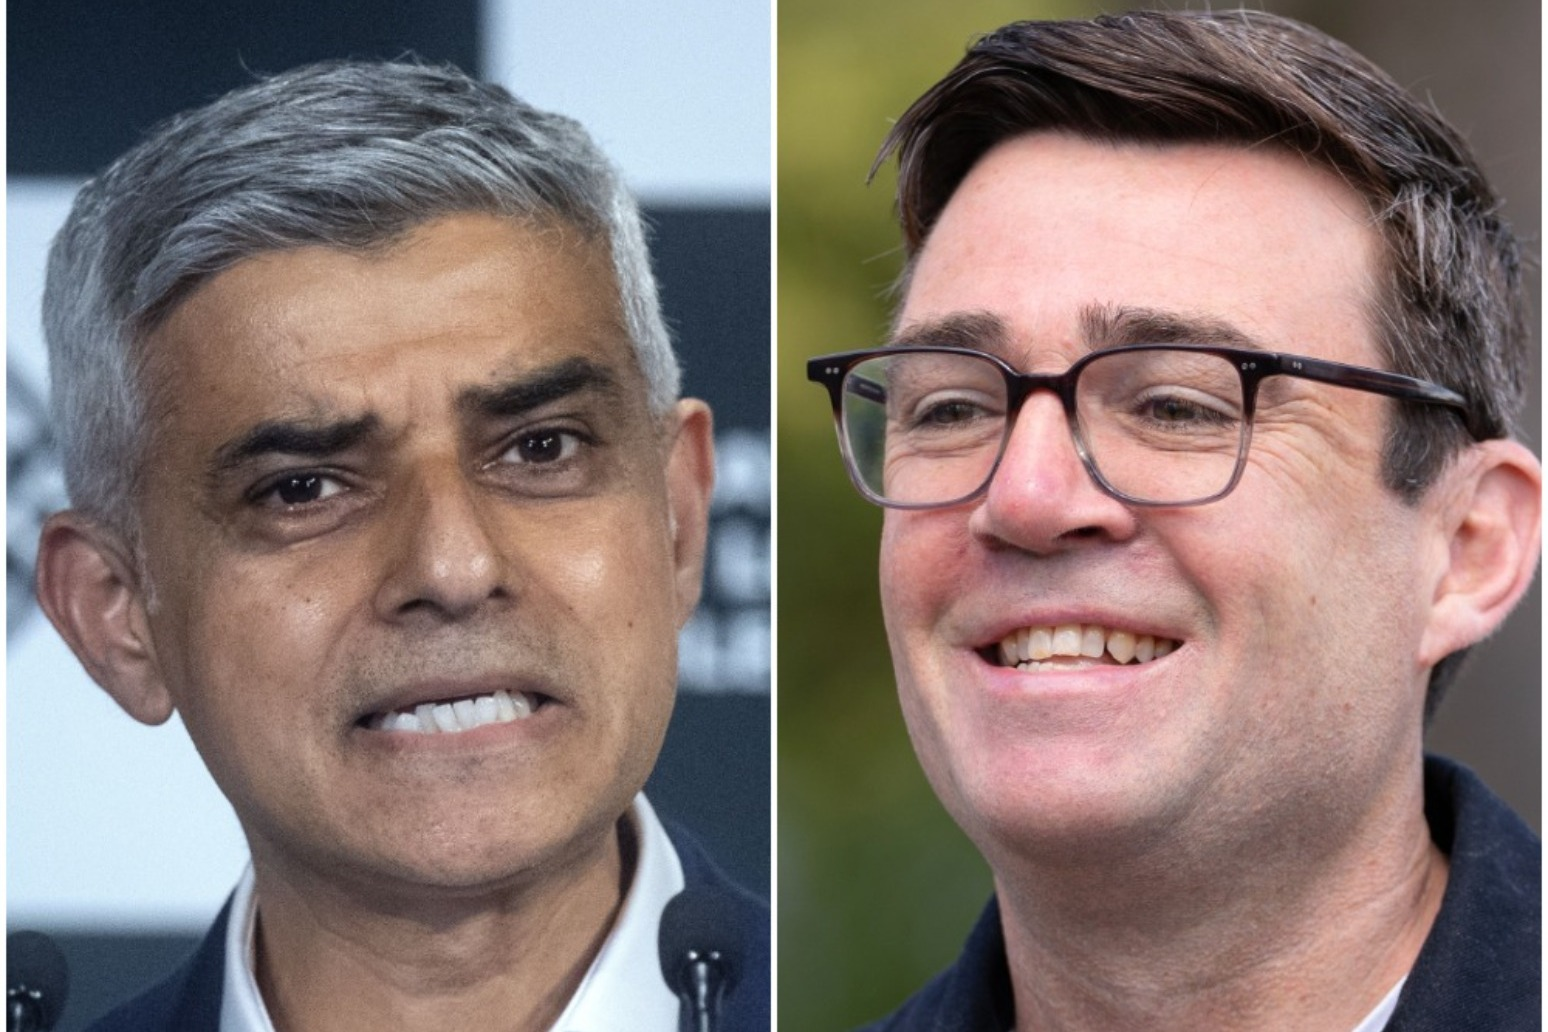 Labour dominates mayoral elections with 10 wins in 12 contests declared so far